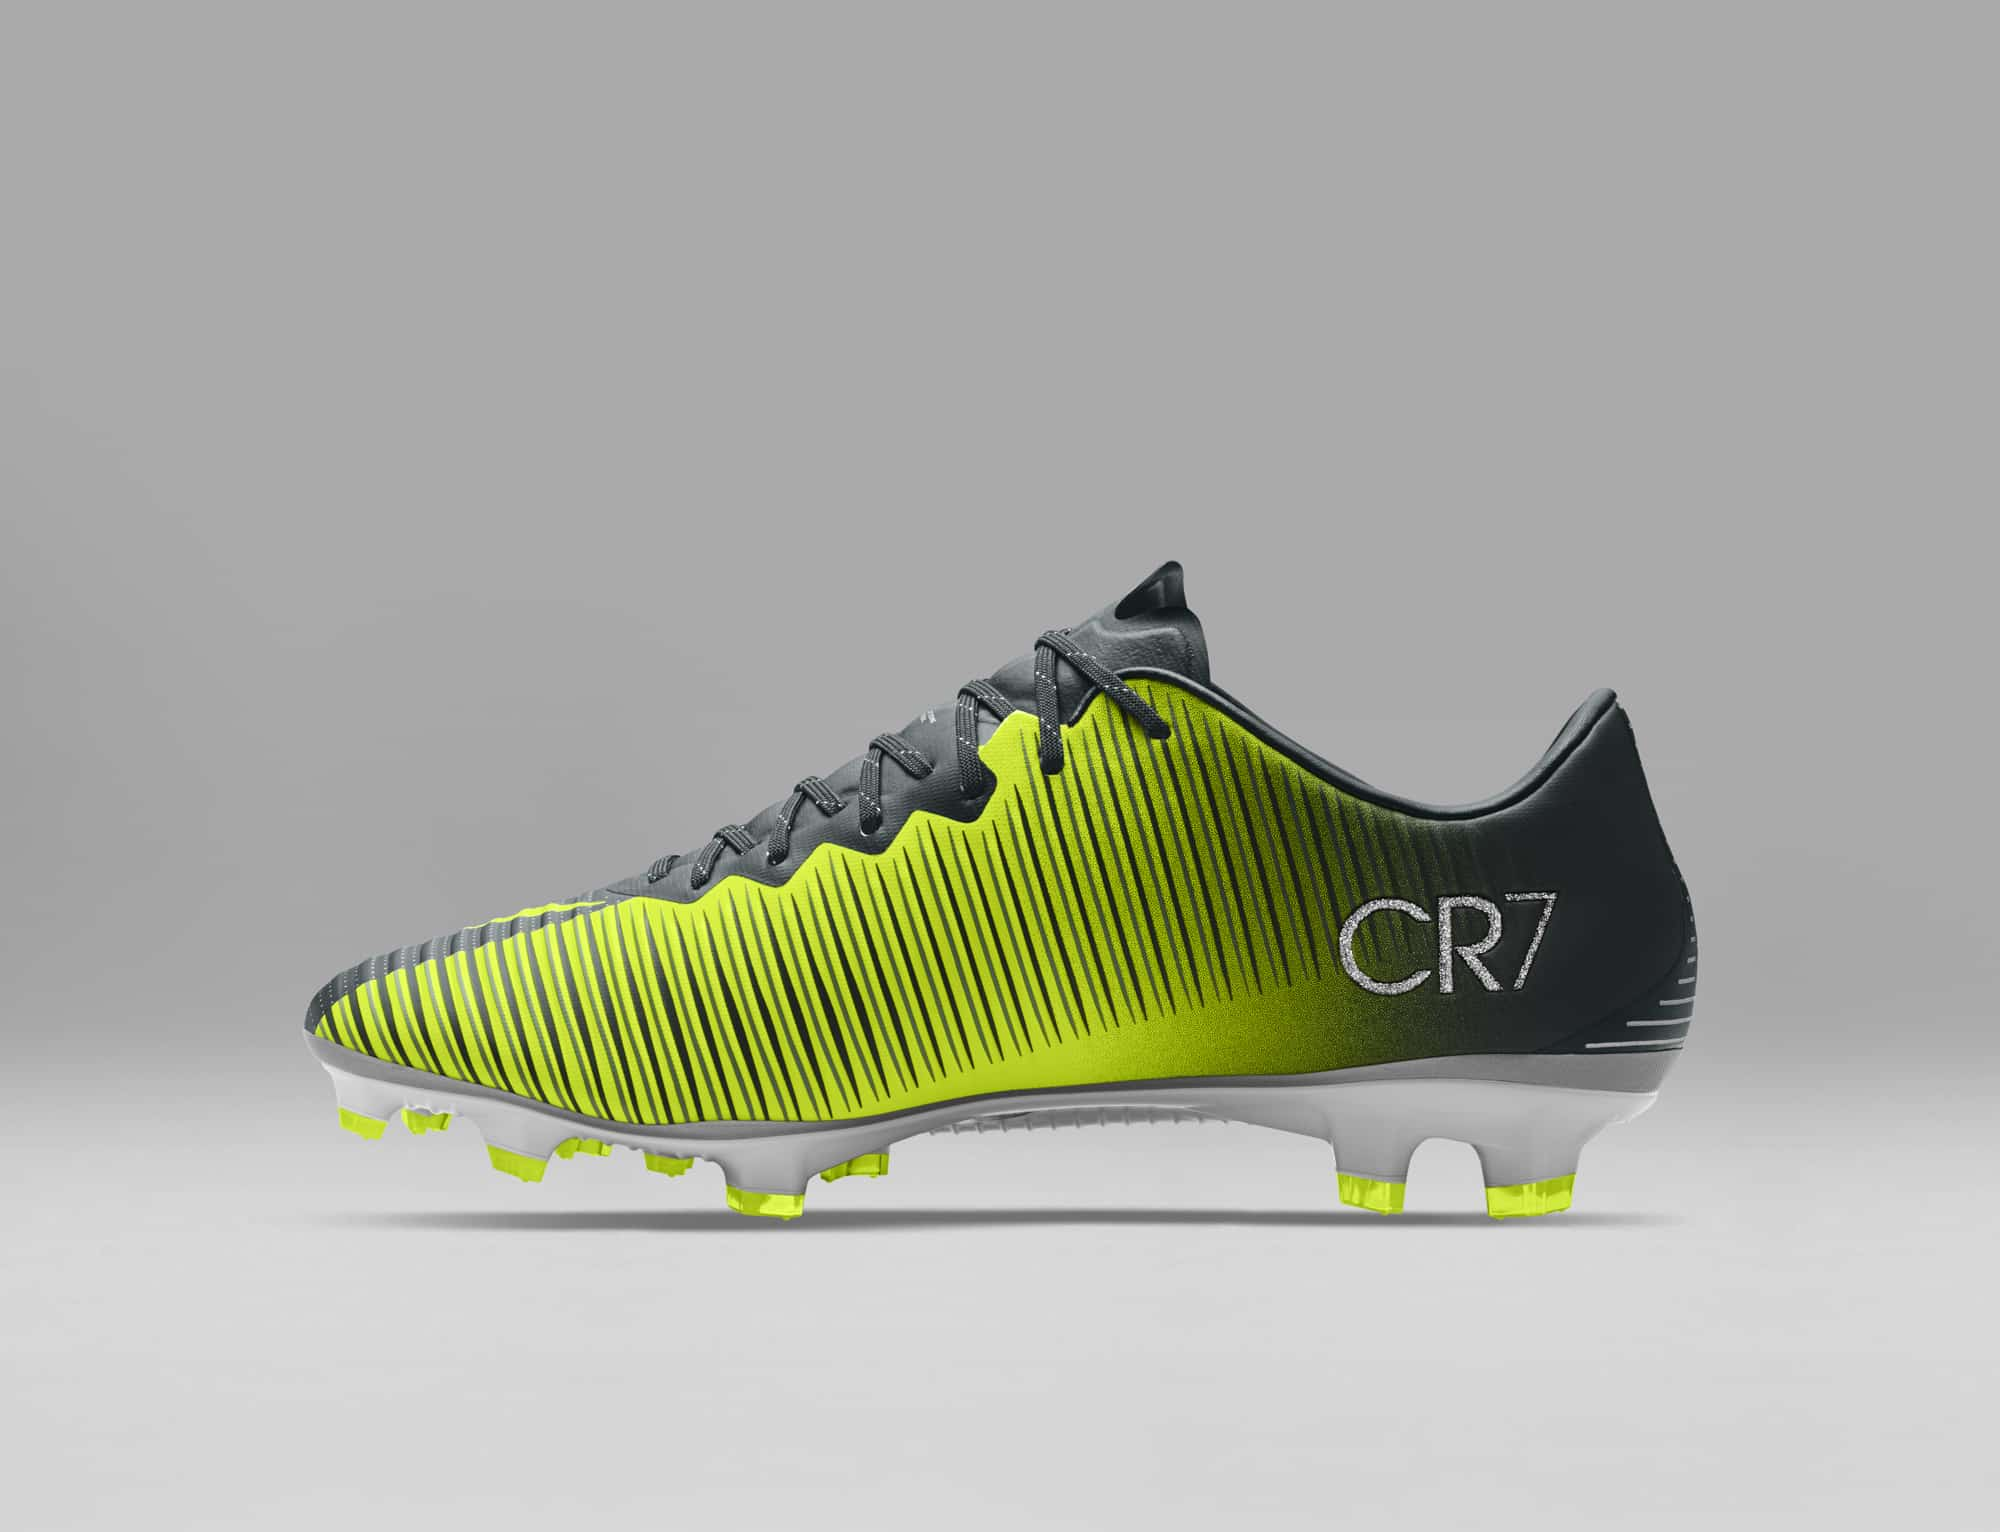 chaussure-football-nike-mercurial-cr7-discovery-img9